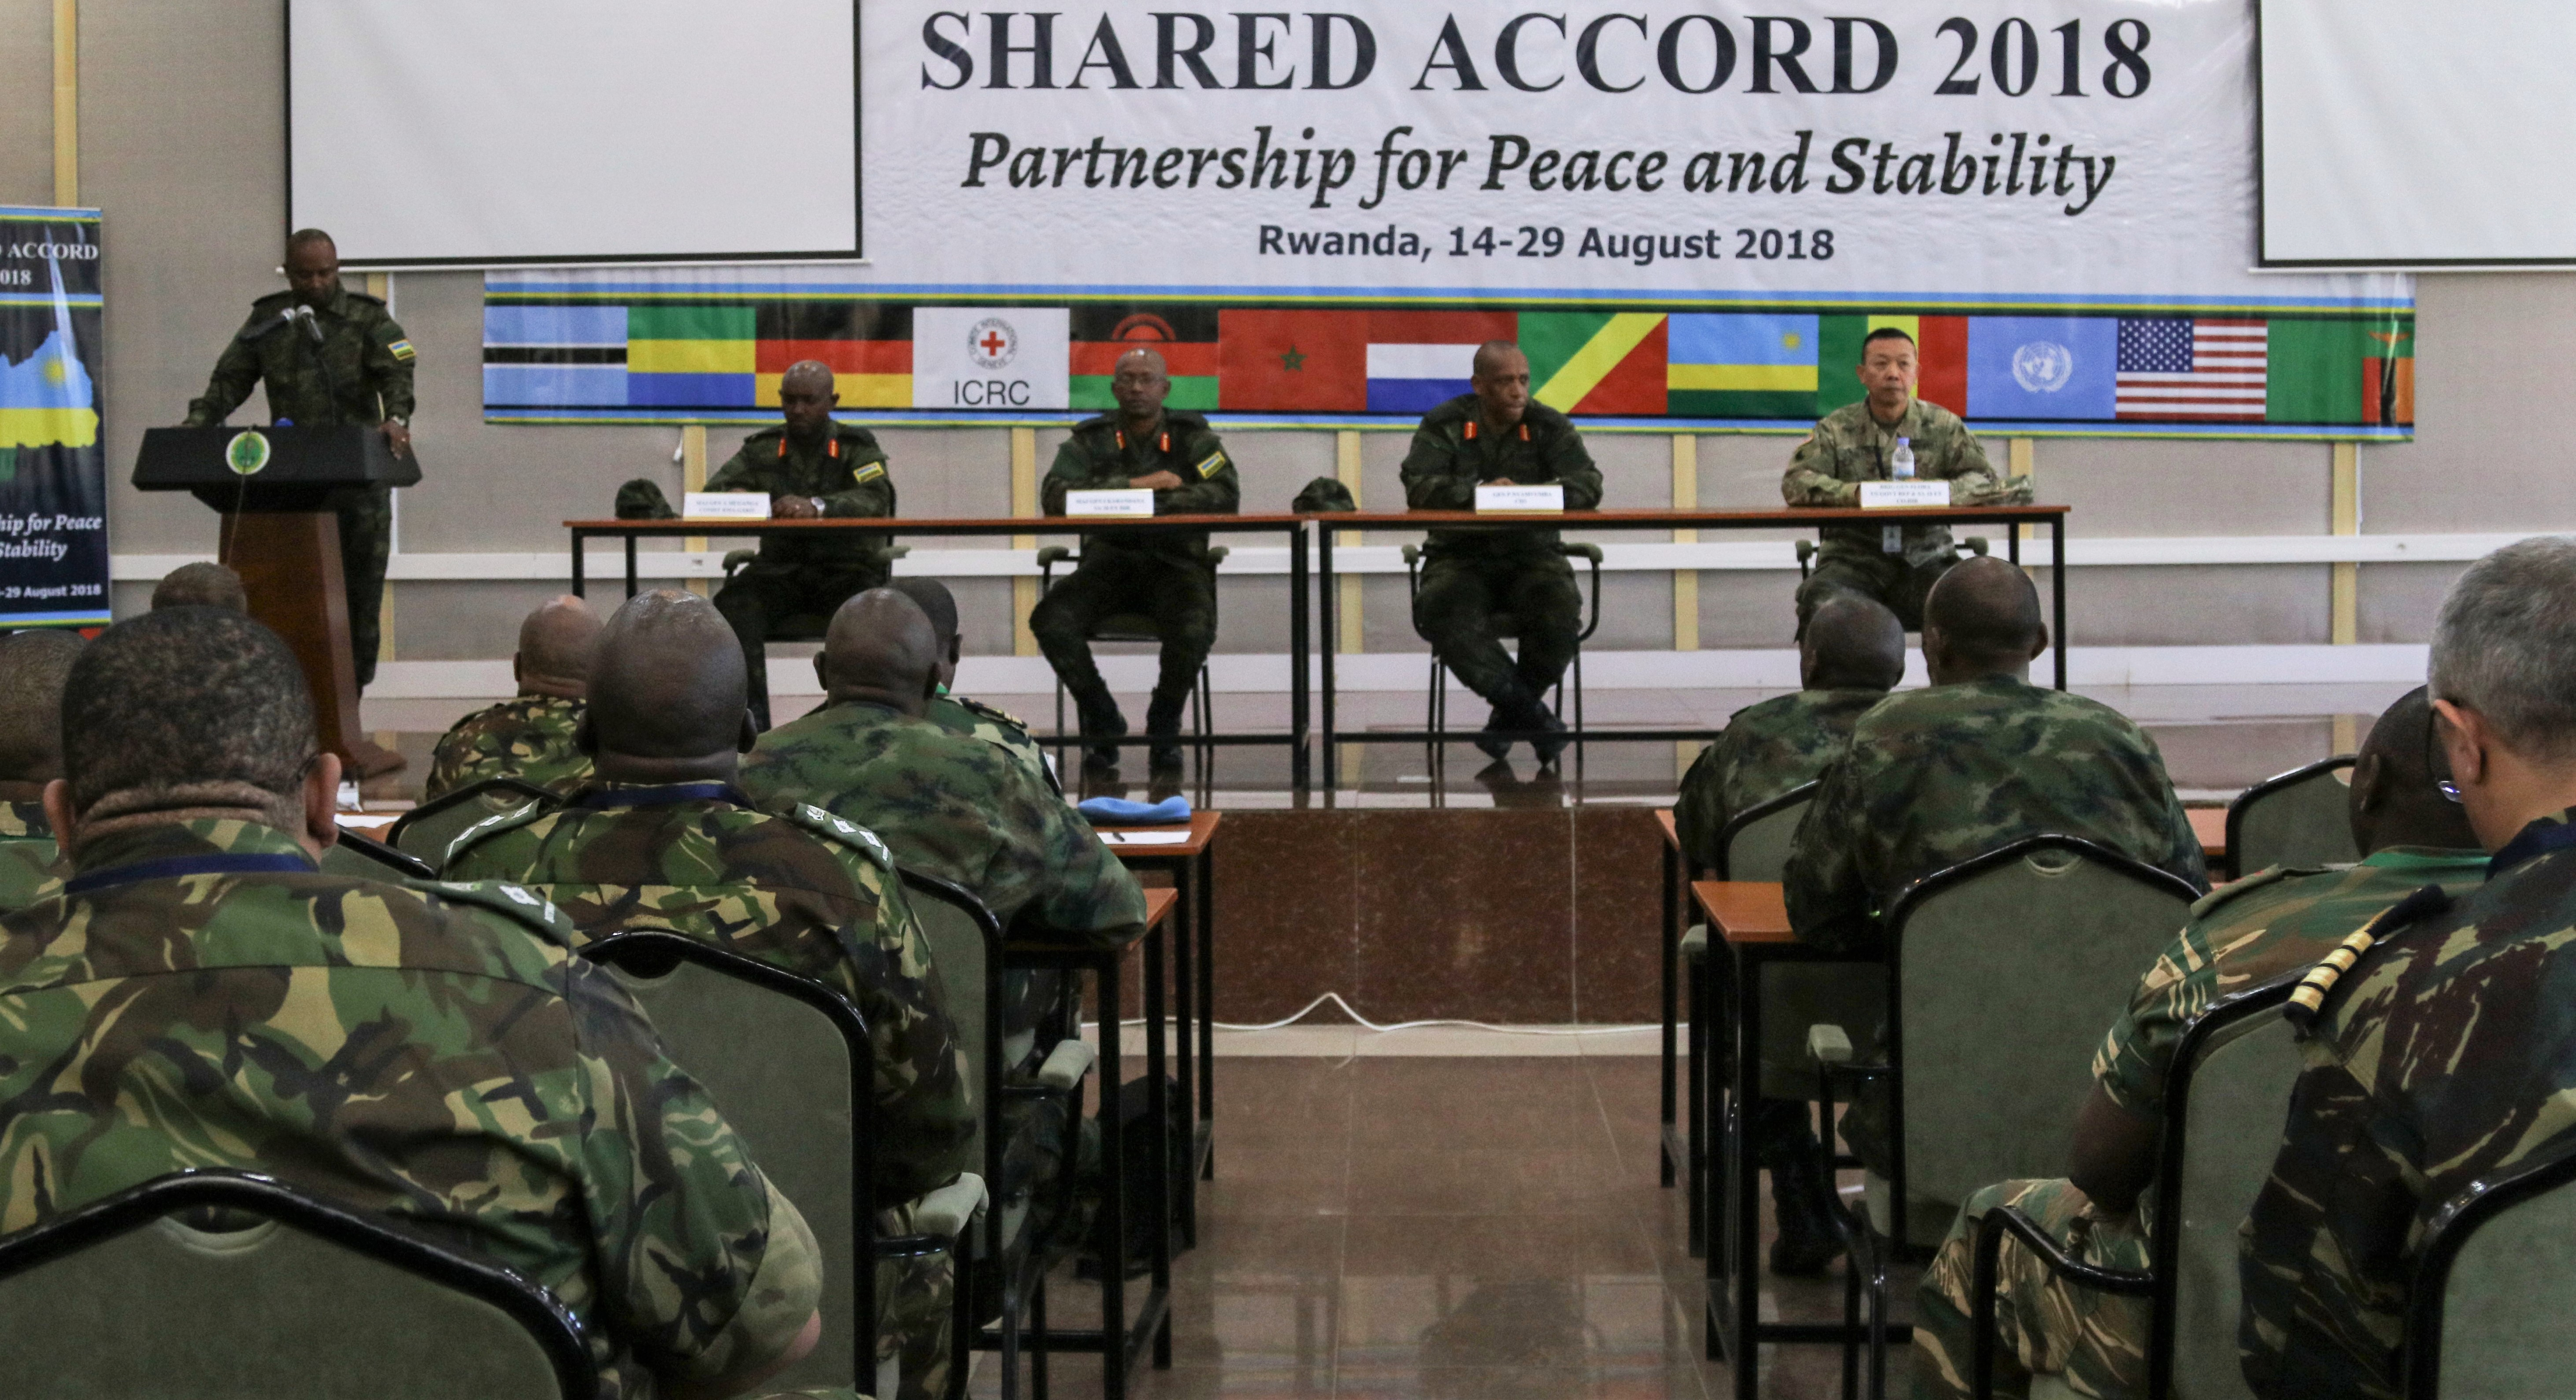 Shared accord opening ceremony commences at the Rwandan Military Academy in Gako, Rwanda, Aug.14, 2018. SA18, sponsored by U.S. Africa Command and executed by U.S. Army Africa (USARAF), trains participants on U.S., U.N., and African Union mandated peacekeeping operations by replicating real-world scenarios from the U.N. mission in the Central African Republic – Multidimensional Integrated Stabilization Mission in the Central African Republic (MINUSCA). (U.S. Army Photo by Sgt. Jennifer Garza)